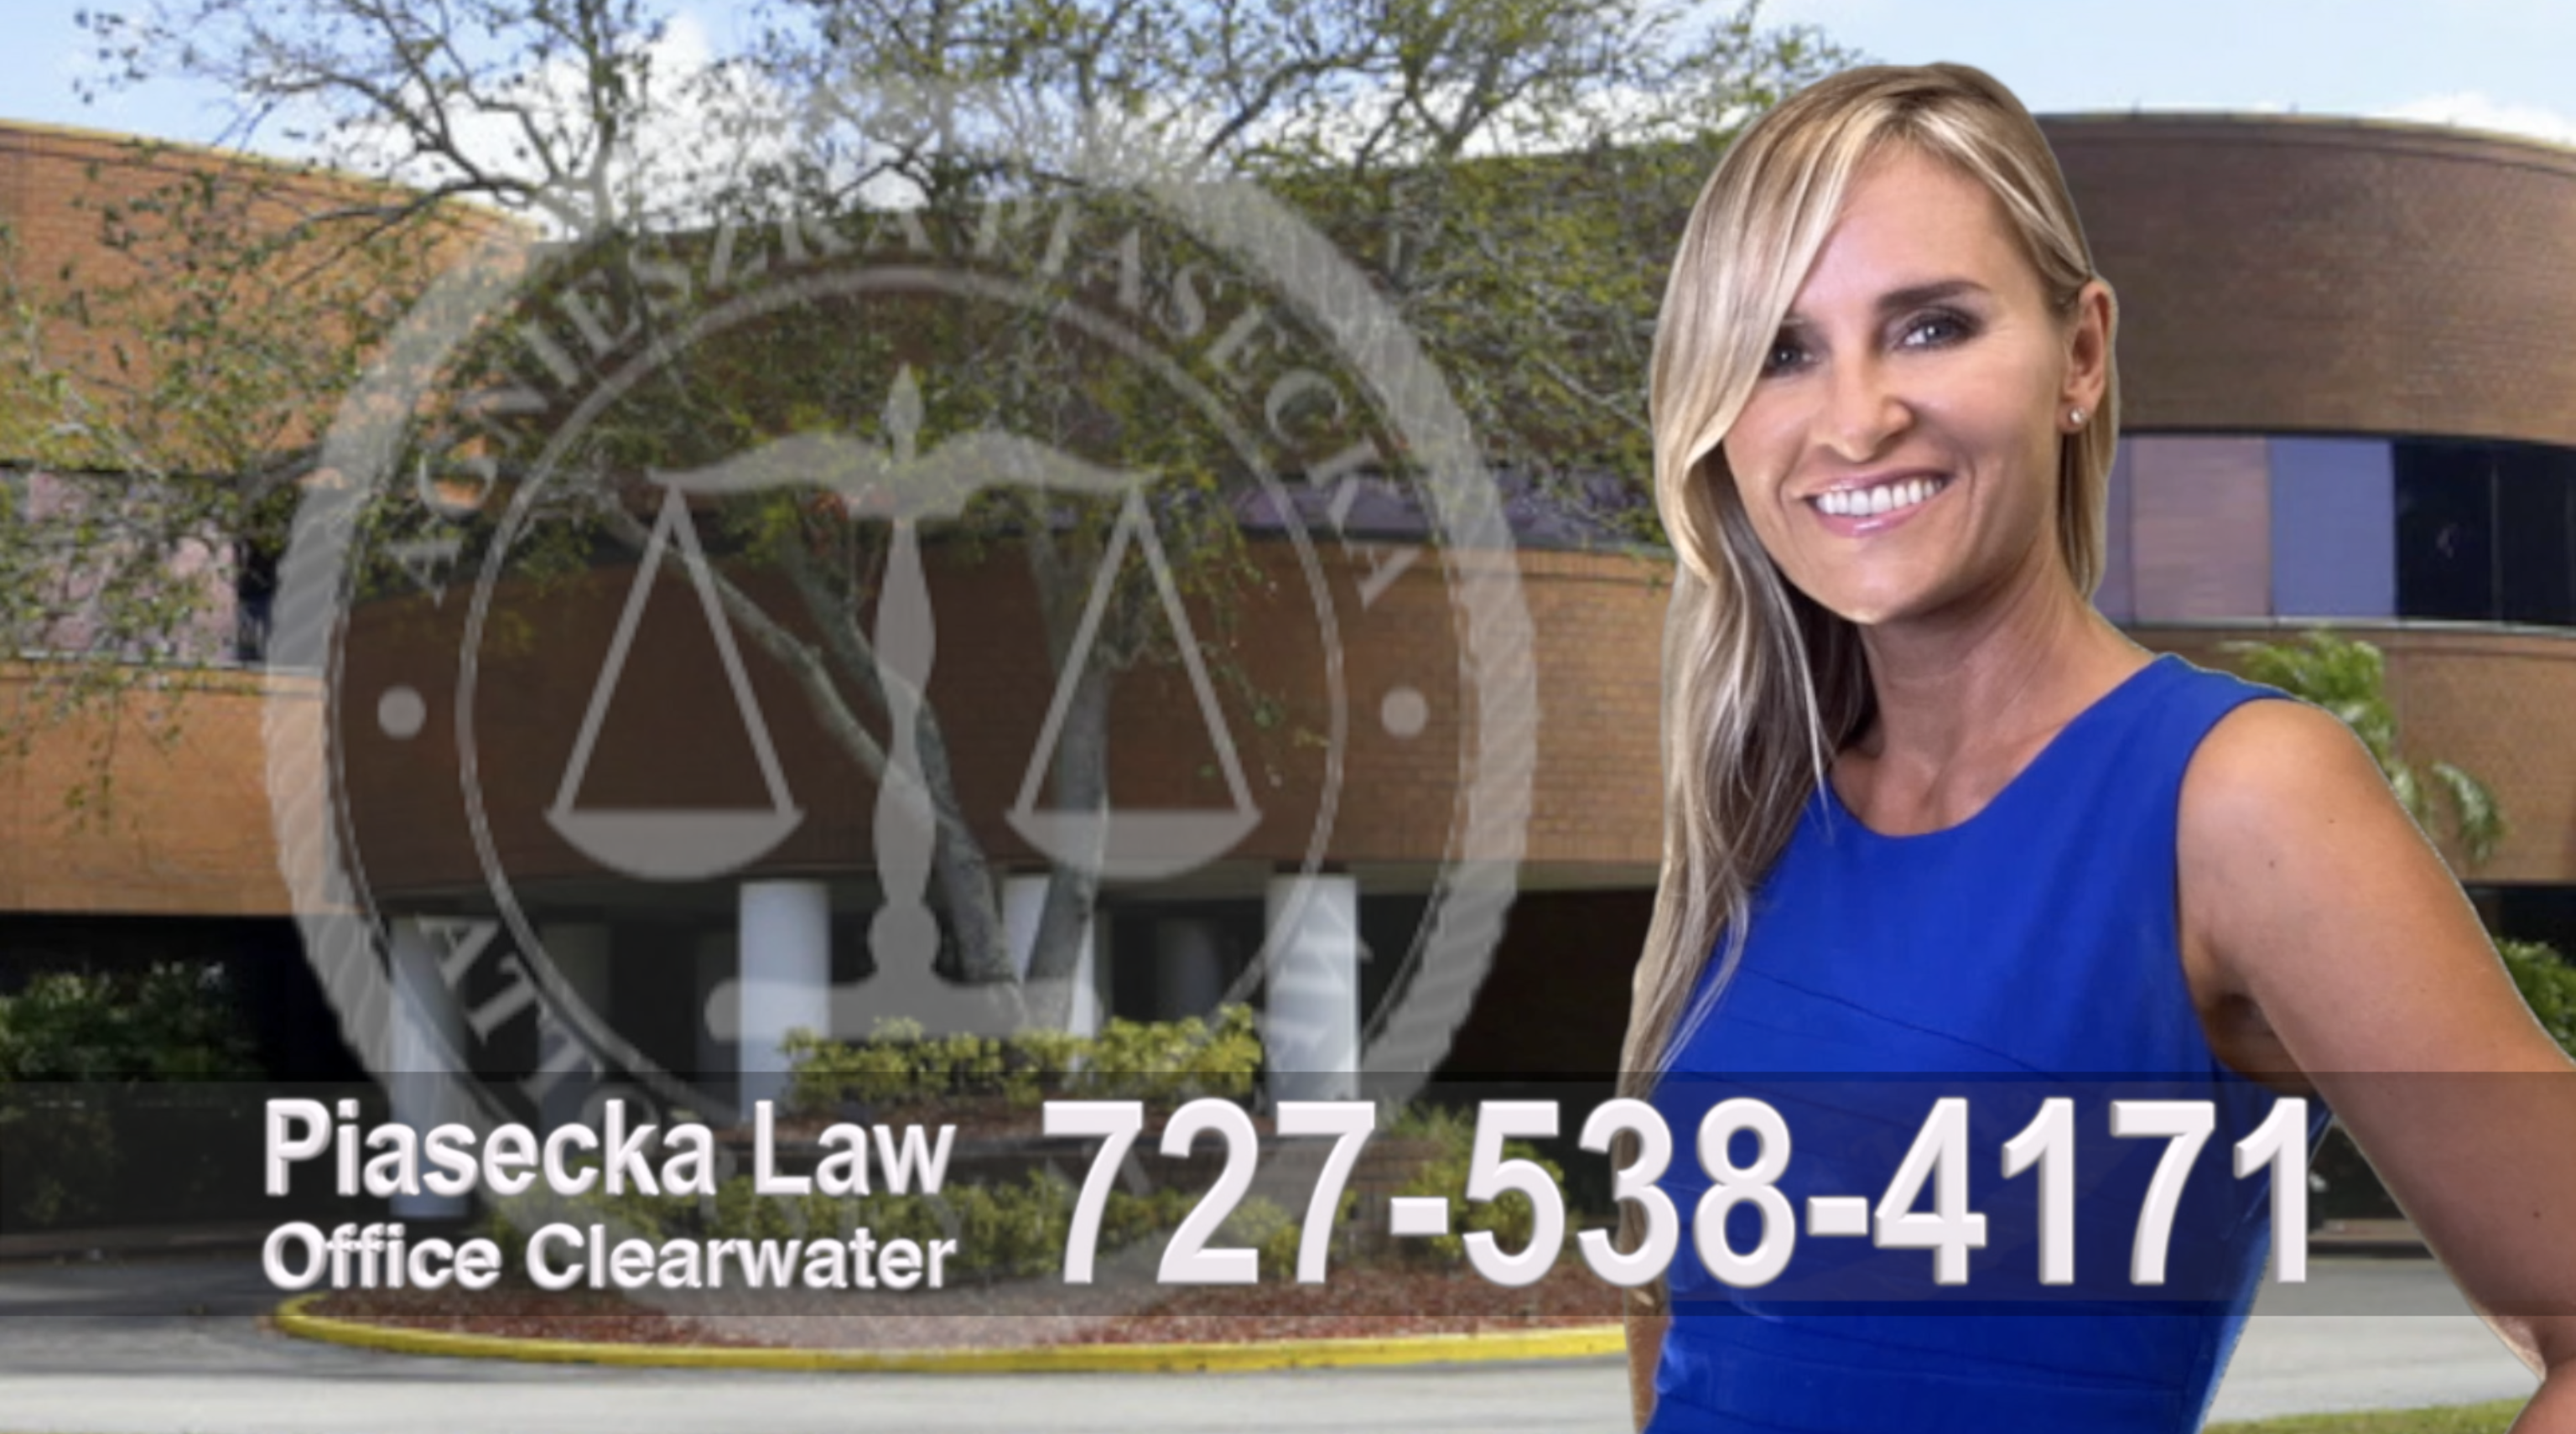 Wills and Trusts, Clearwater, Attorney, Lawyer, Polish, Agnieszka Piasecka, Aga Piasecka, Clearwater, Florida, Office address